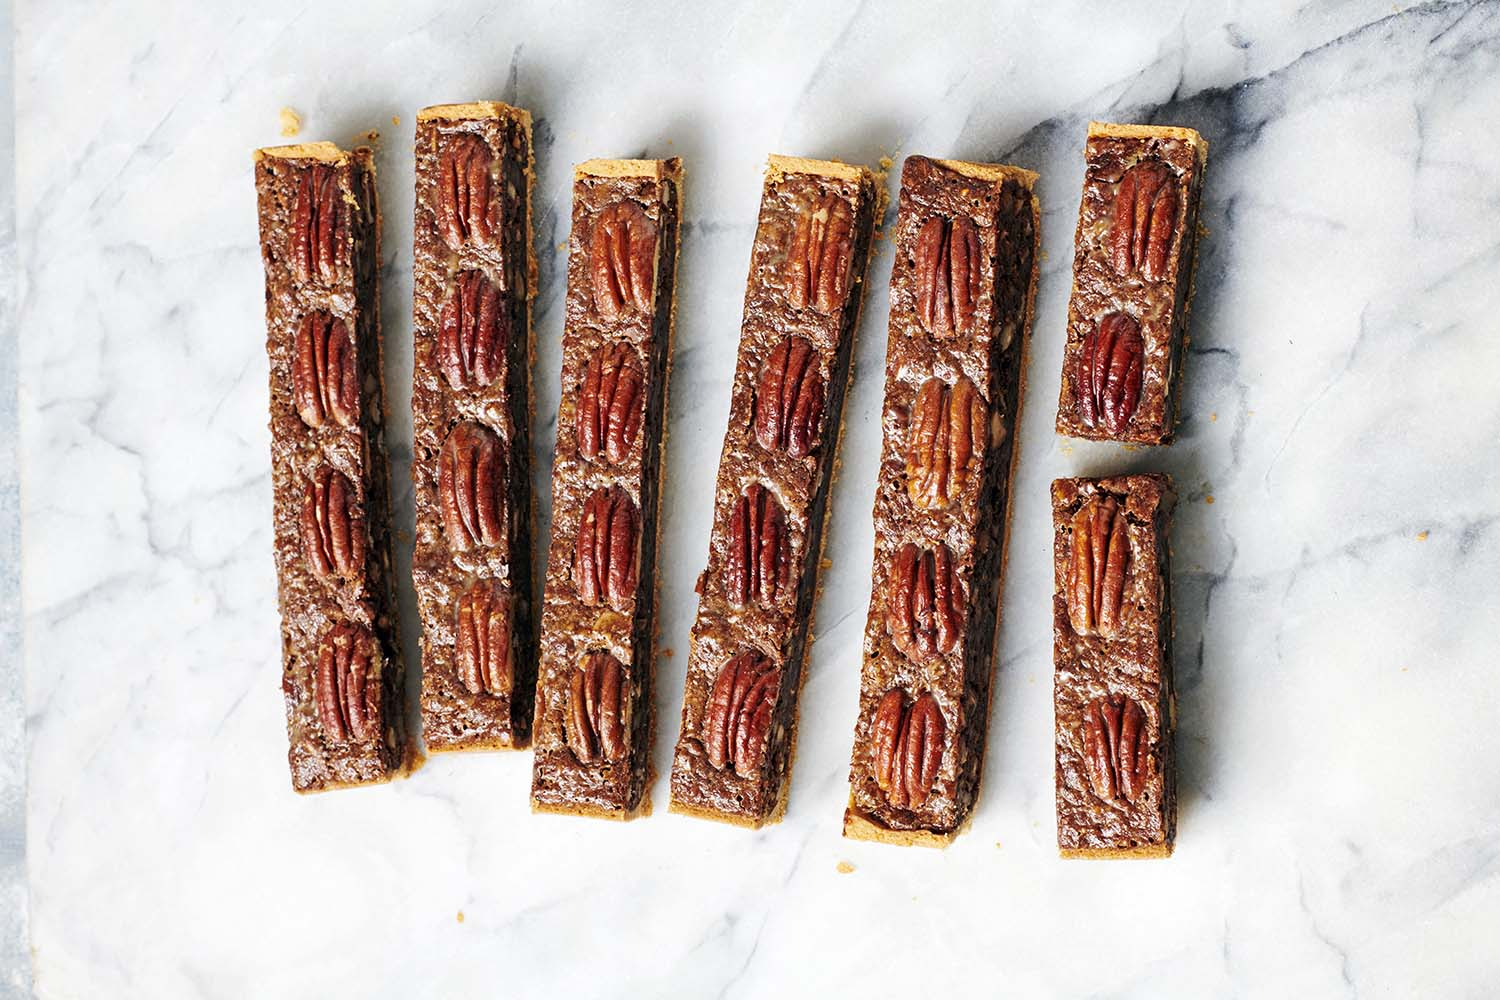 Chocolate Pecan Brazil Nut bars.jpg